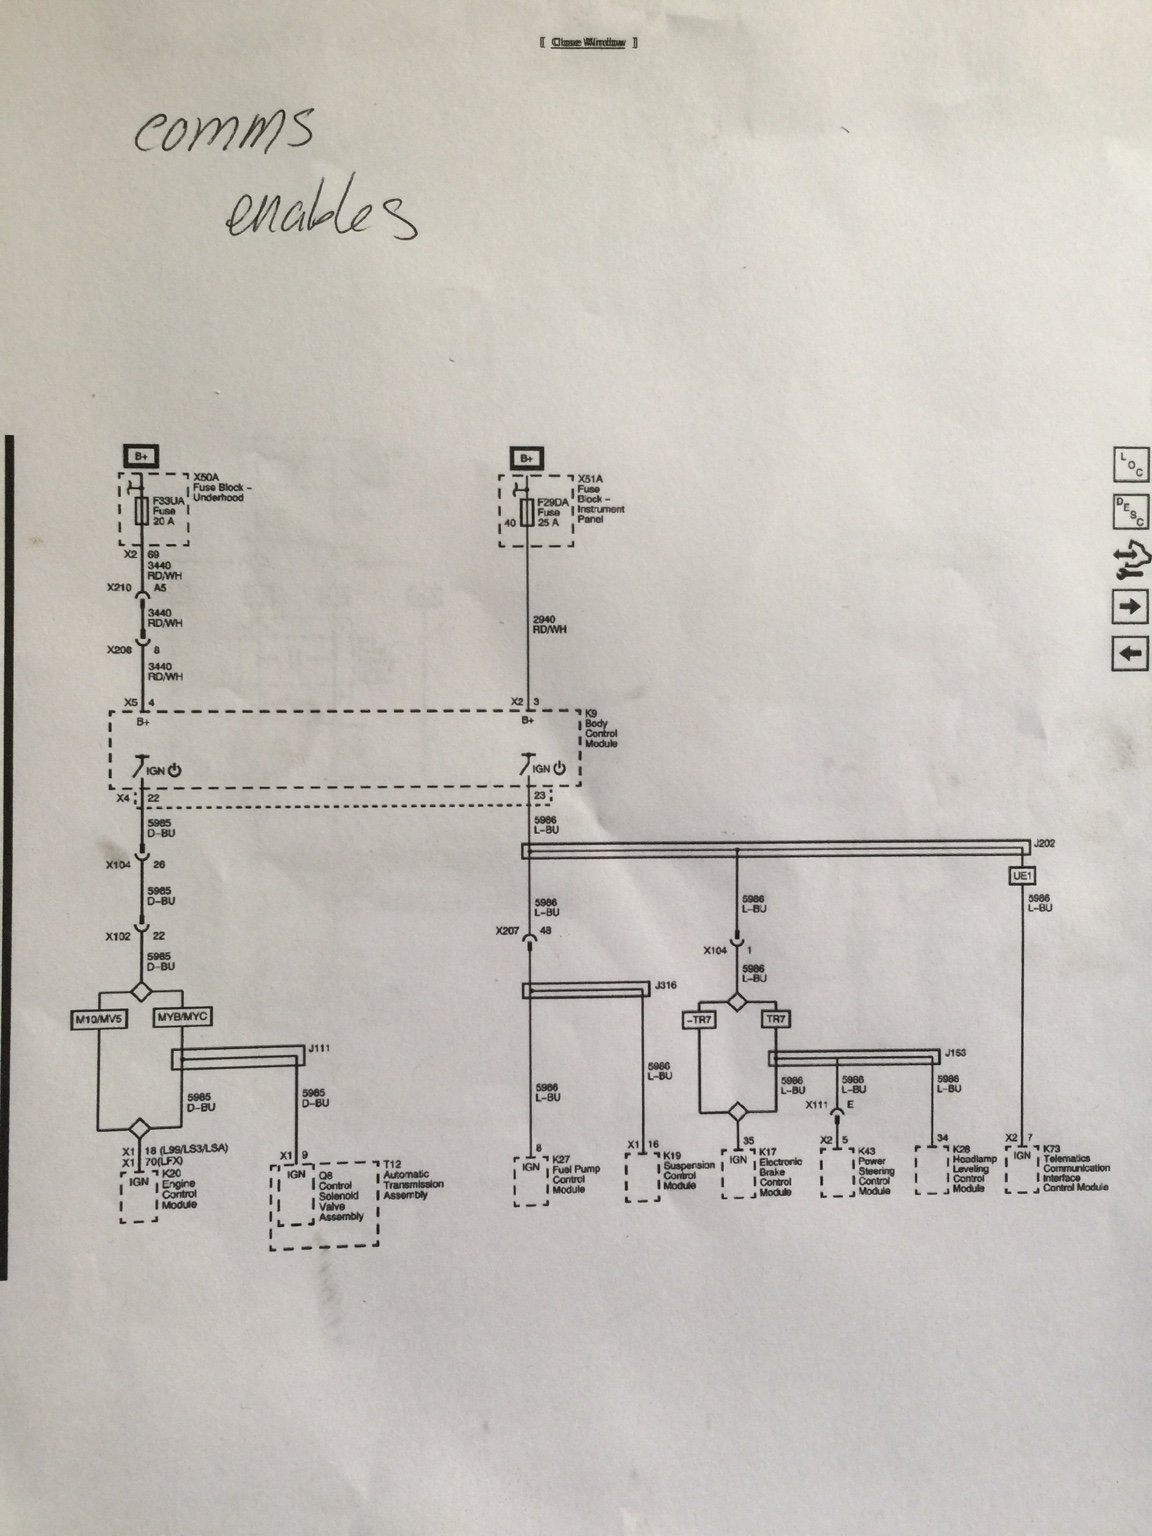 Anyone Have 2015 Ss Manual With Harness Information Camaro5 Chevy 2014 Camaro Wiring Diagram Data I Can Find My Wires On The Wire Diagrams But Im Easily Lost After Trying To How Pin In Through Fuse Box